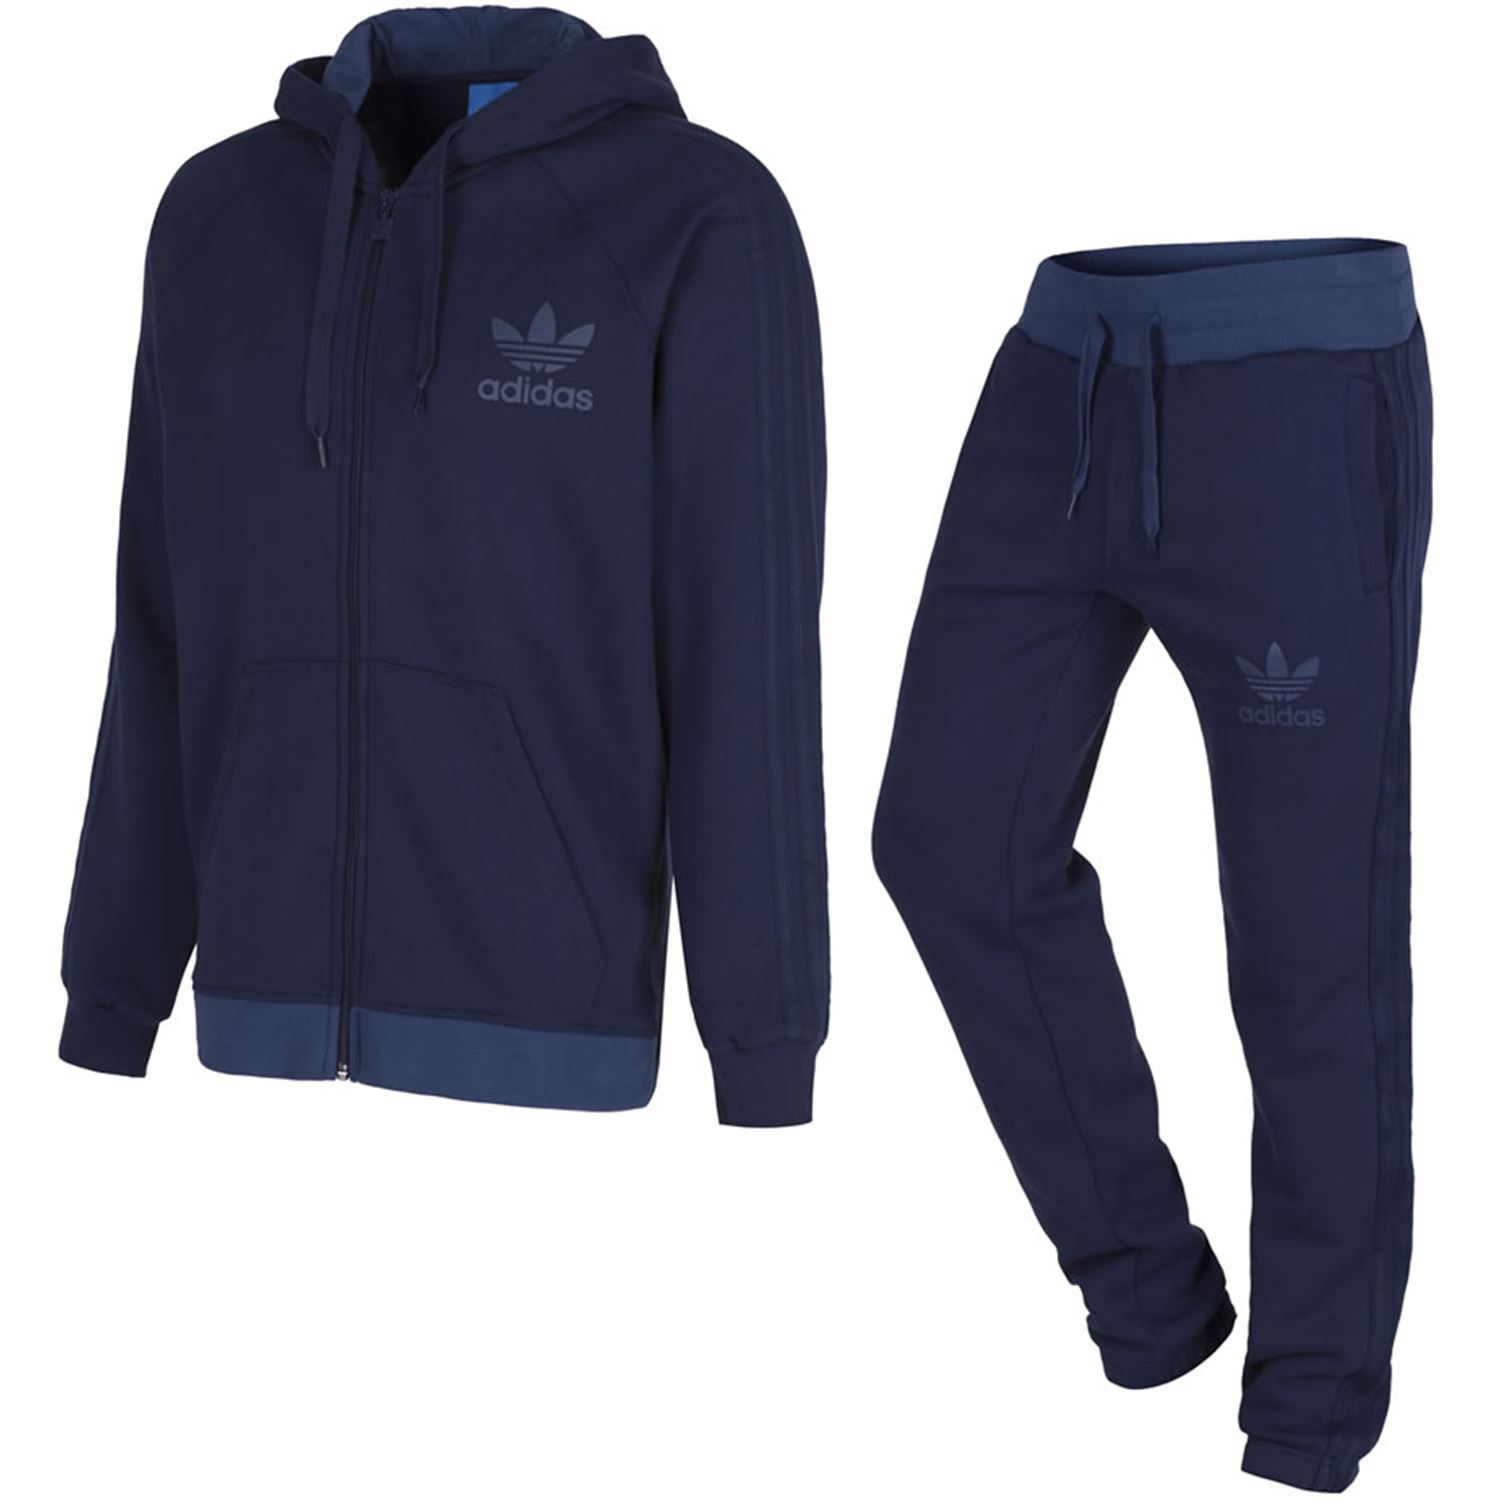 Suit up with the Footasylum collection of men's tracksuits. Here you'll find loads of comfortable tracksuits from all your favourite brands, including colossal names like Nike, EA7 and Tommy Hilfiger.